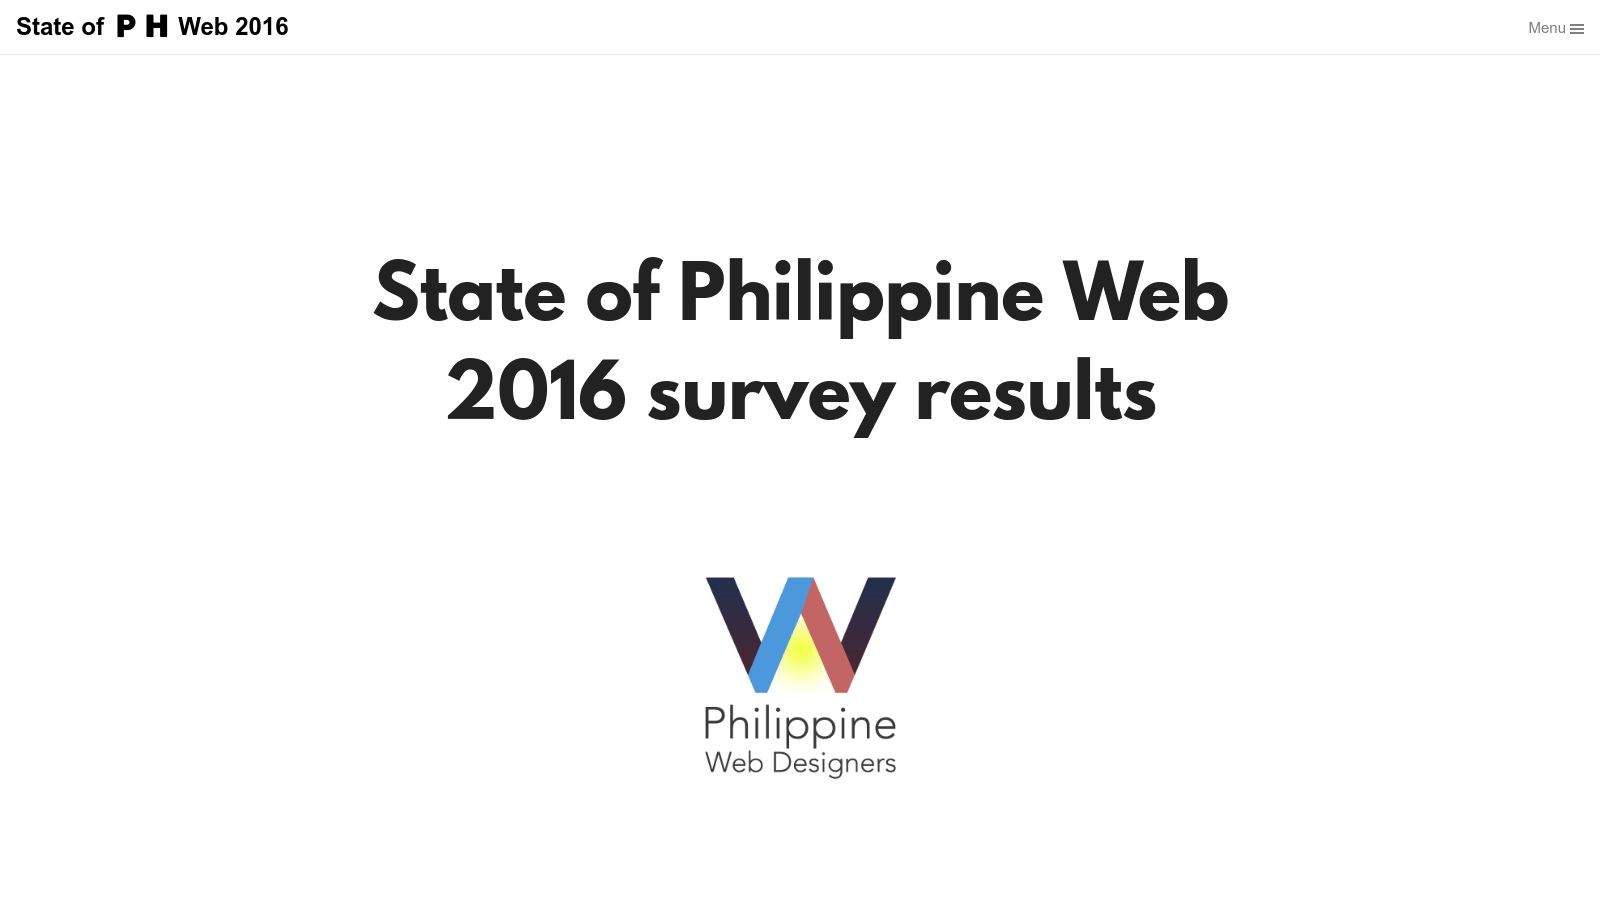 State of the Philippine Web Survey 2016 Results